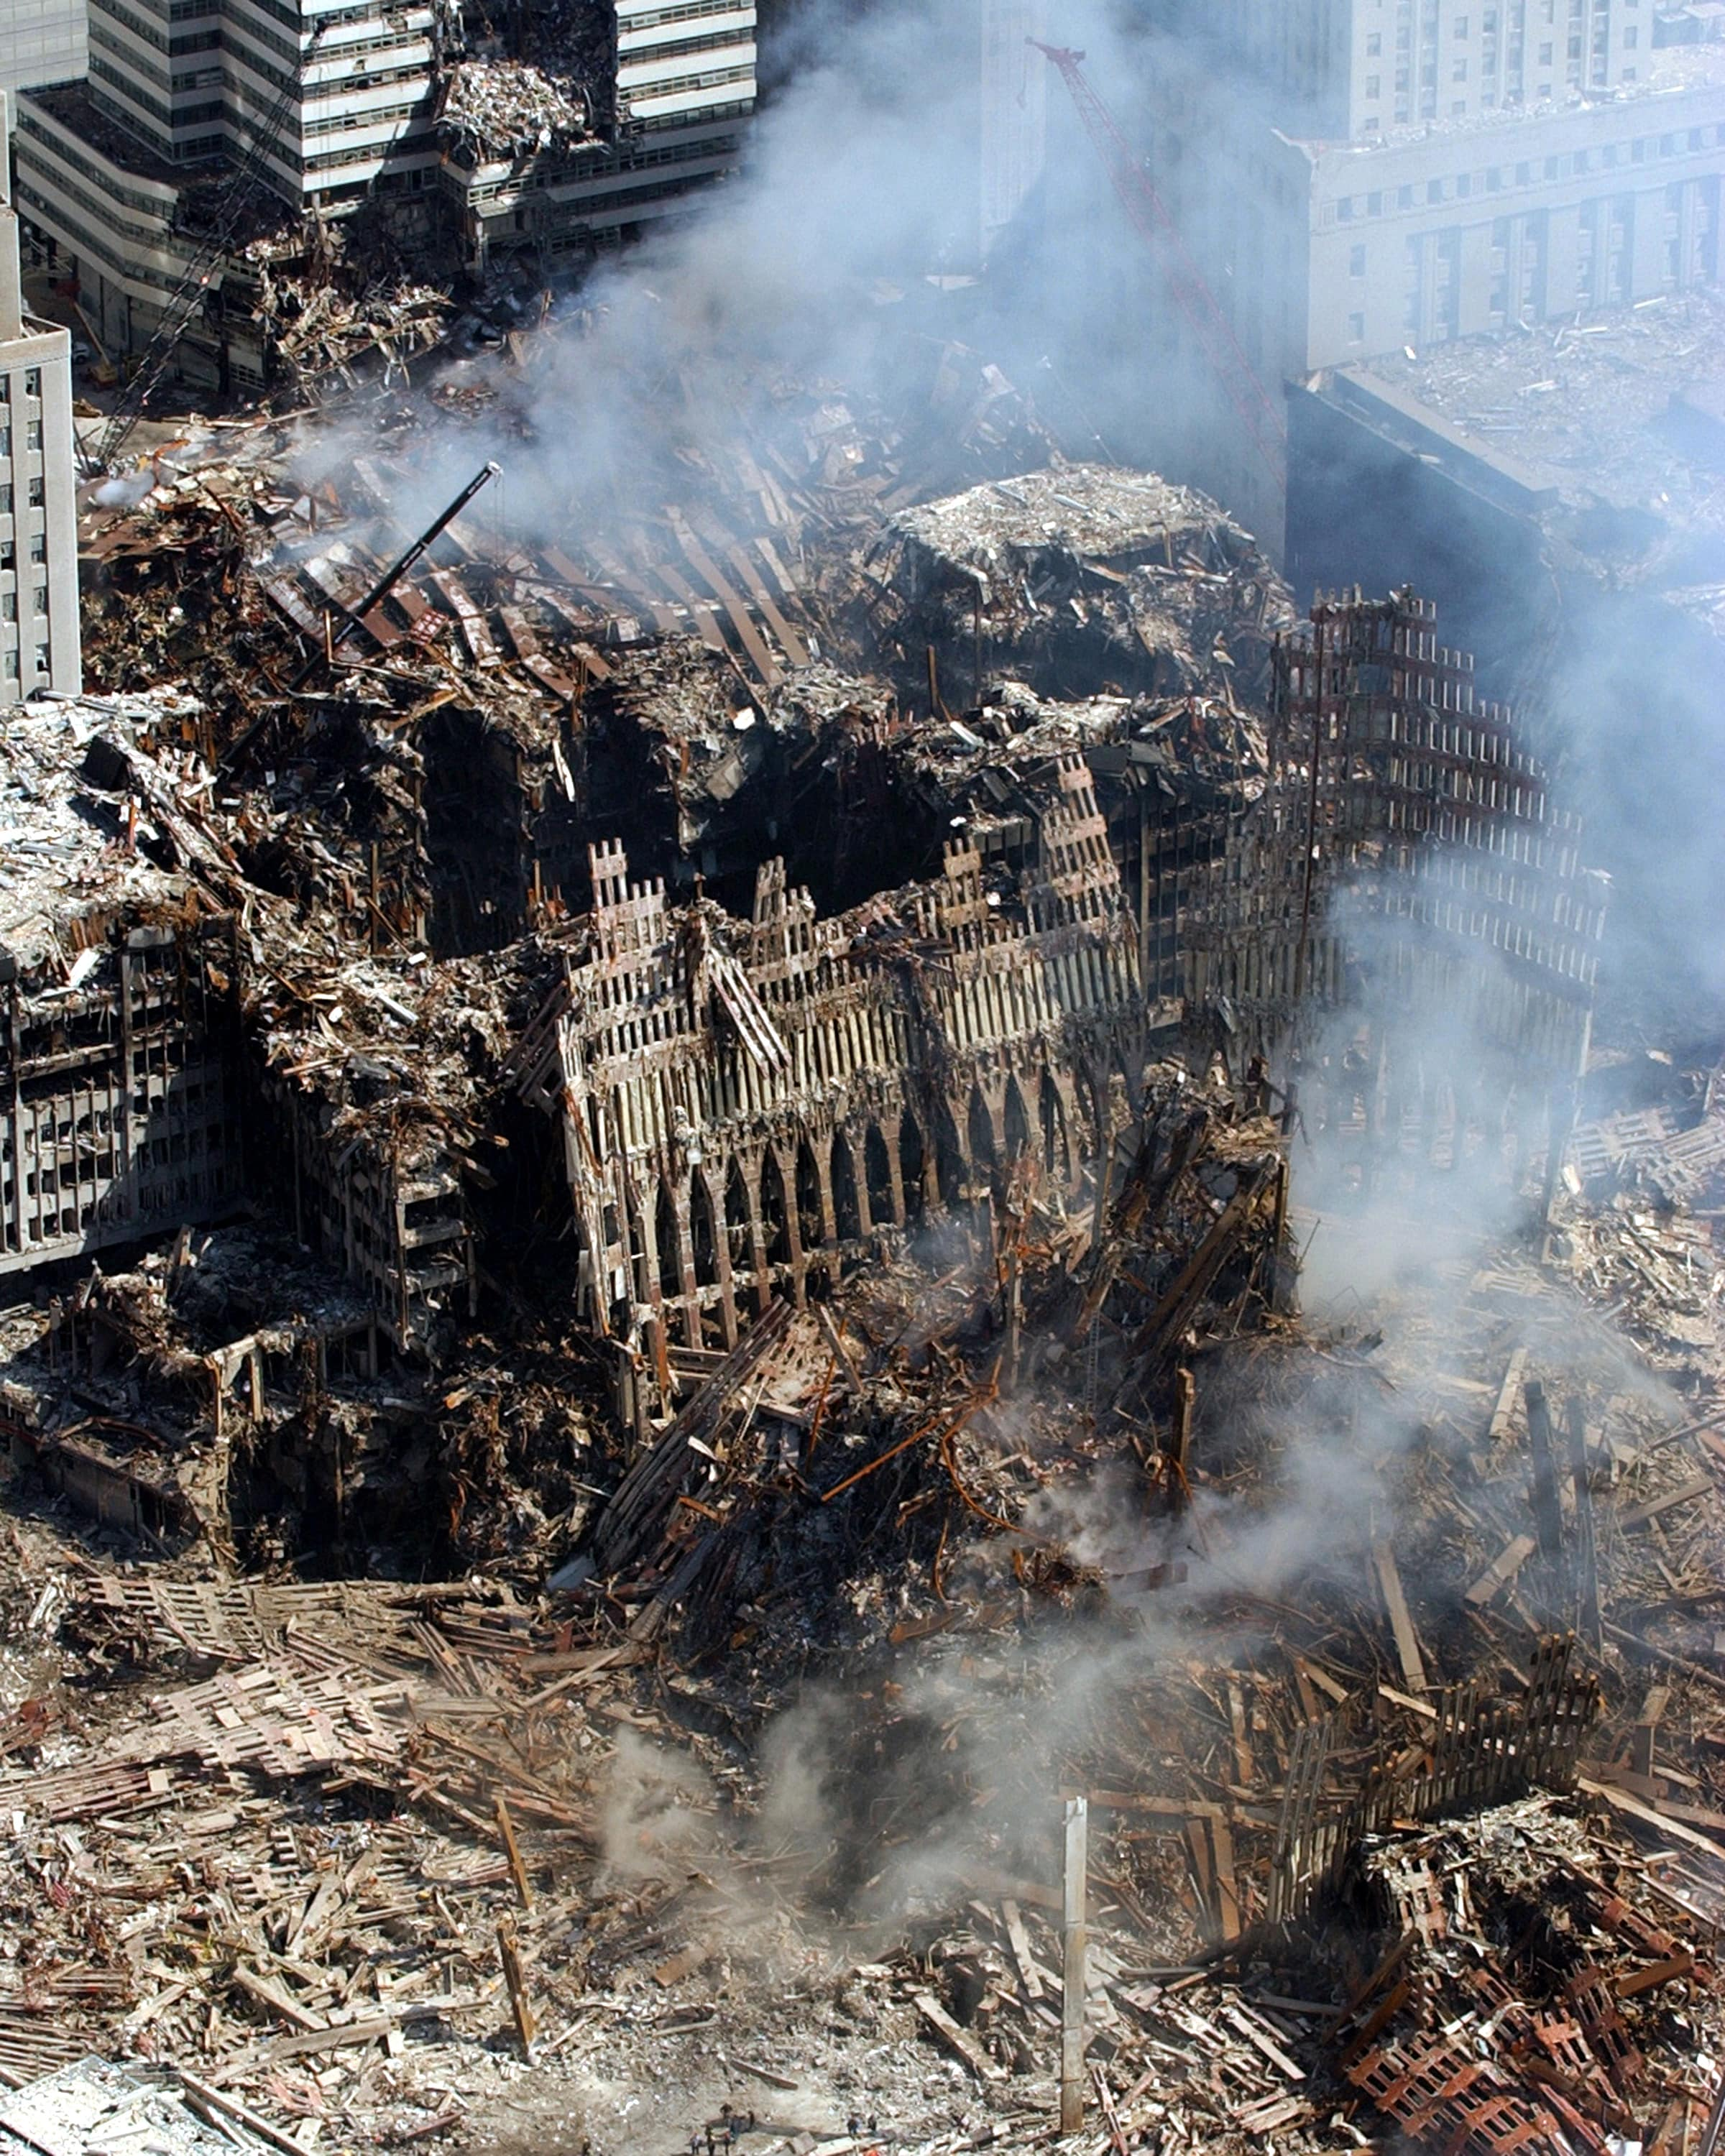 TRANSCEND MEDIA SERVICE » 9/11: The Pentagon's B-Movie